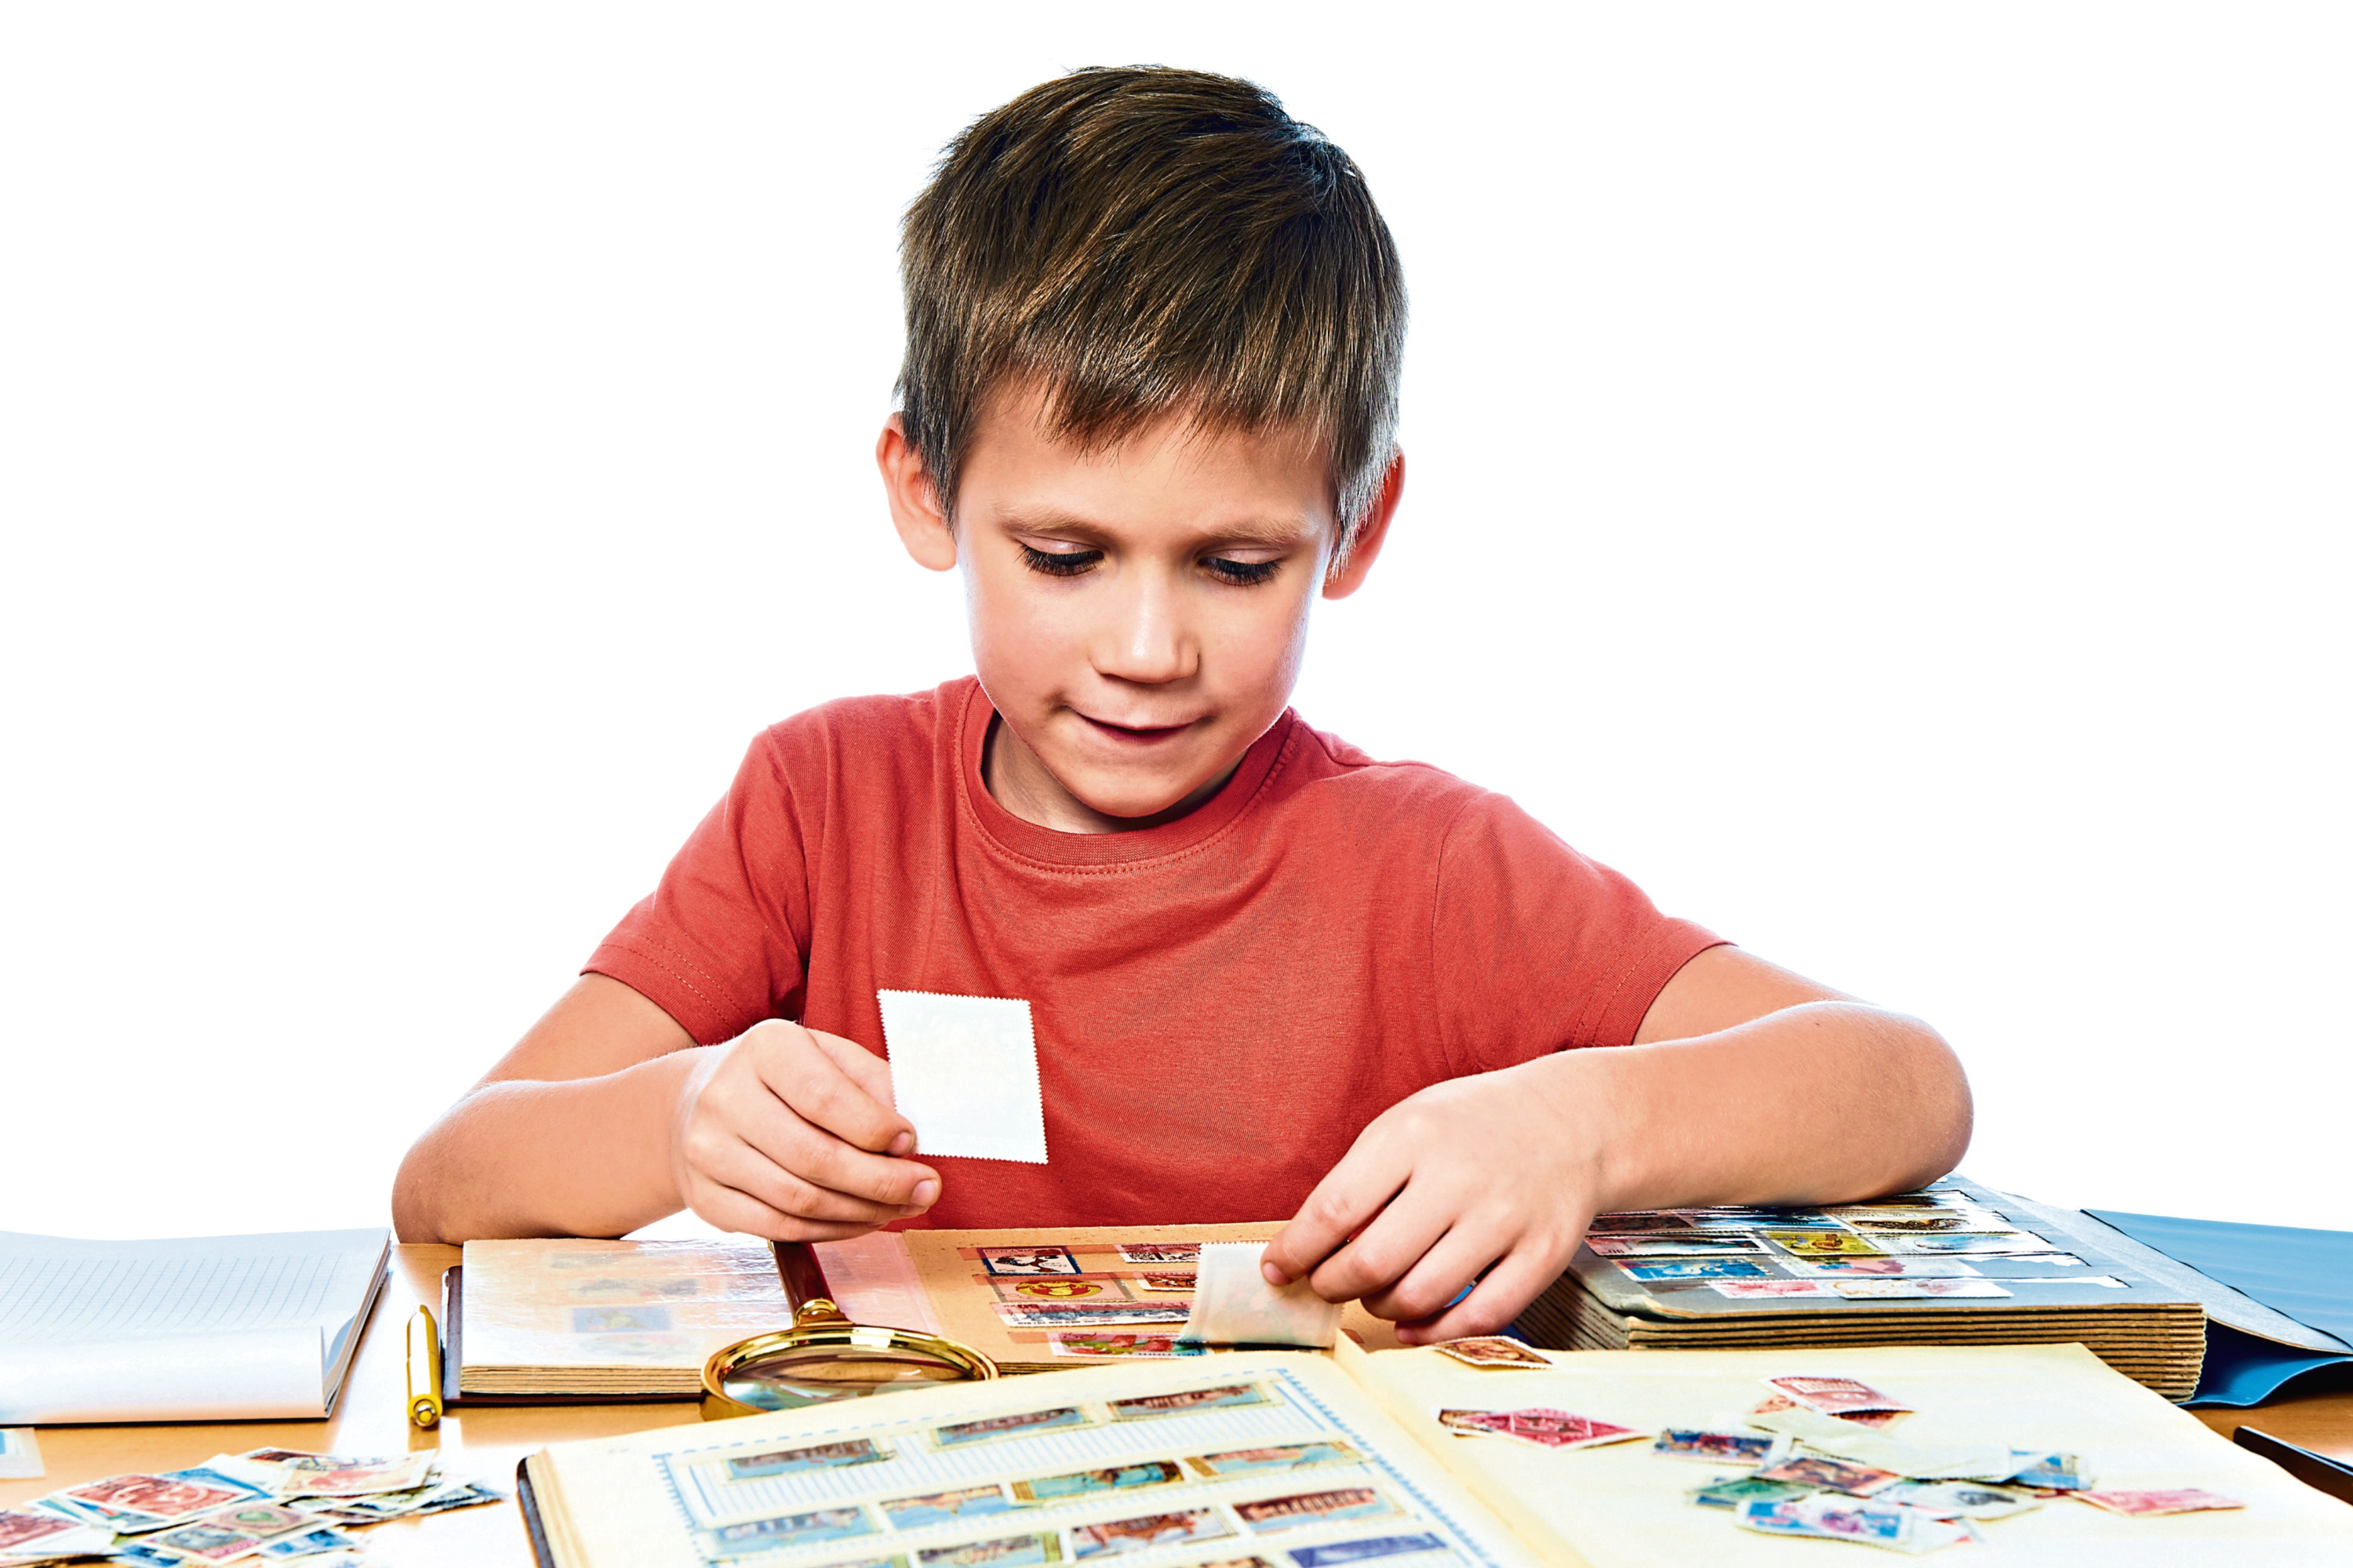 Many collected stamps when they were younger